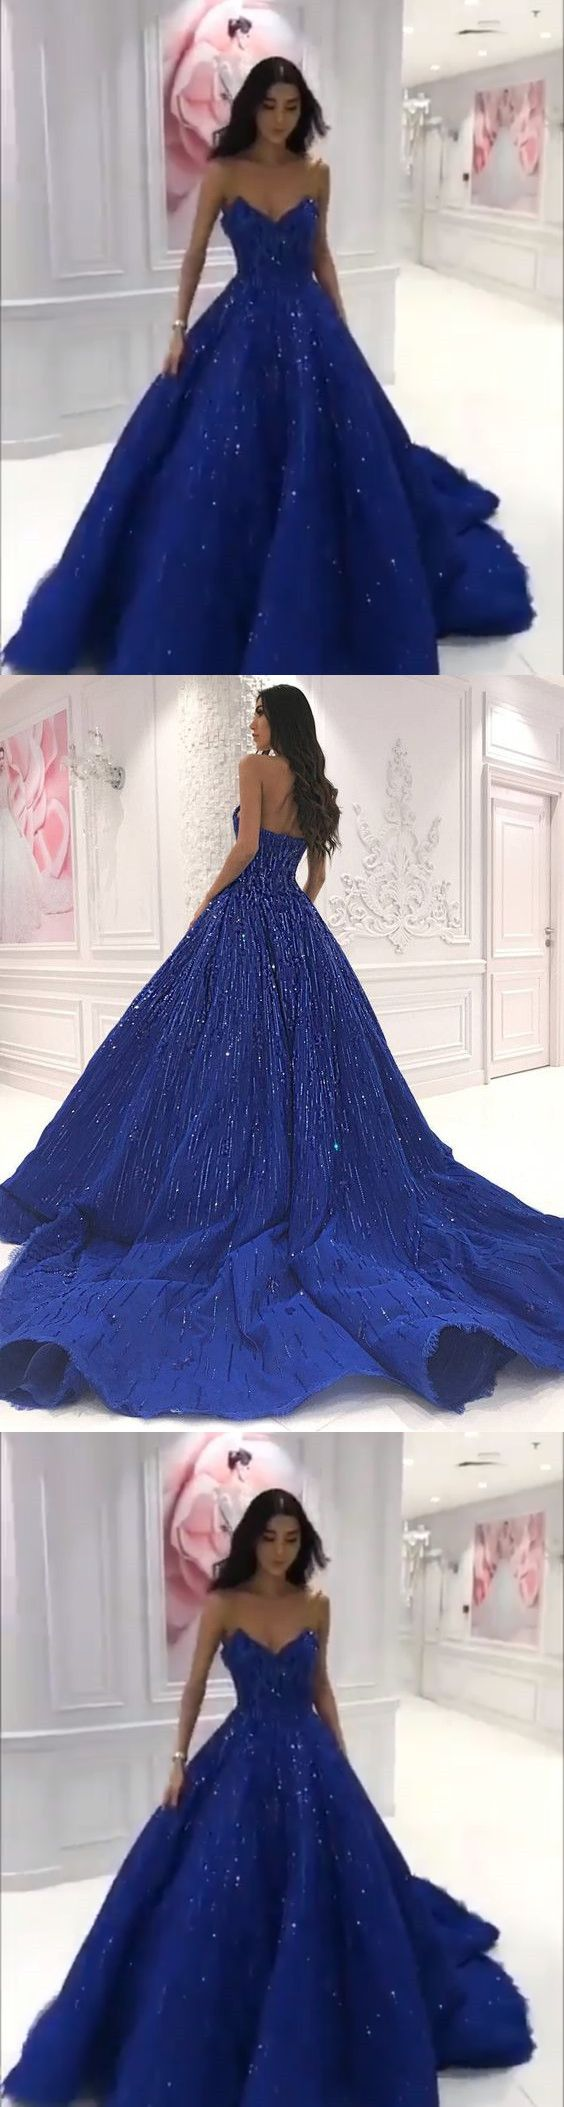 Royal blue sweetheart ball gowns for formal evening dreamy